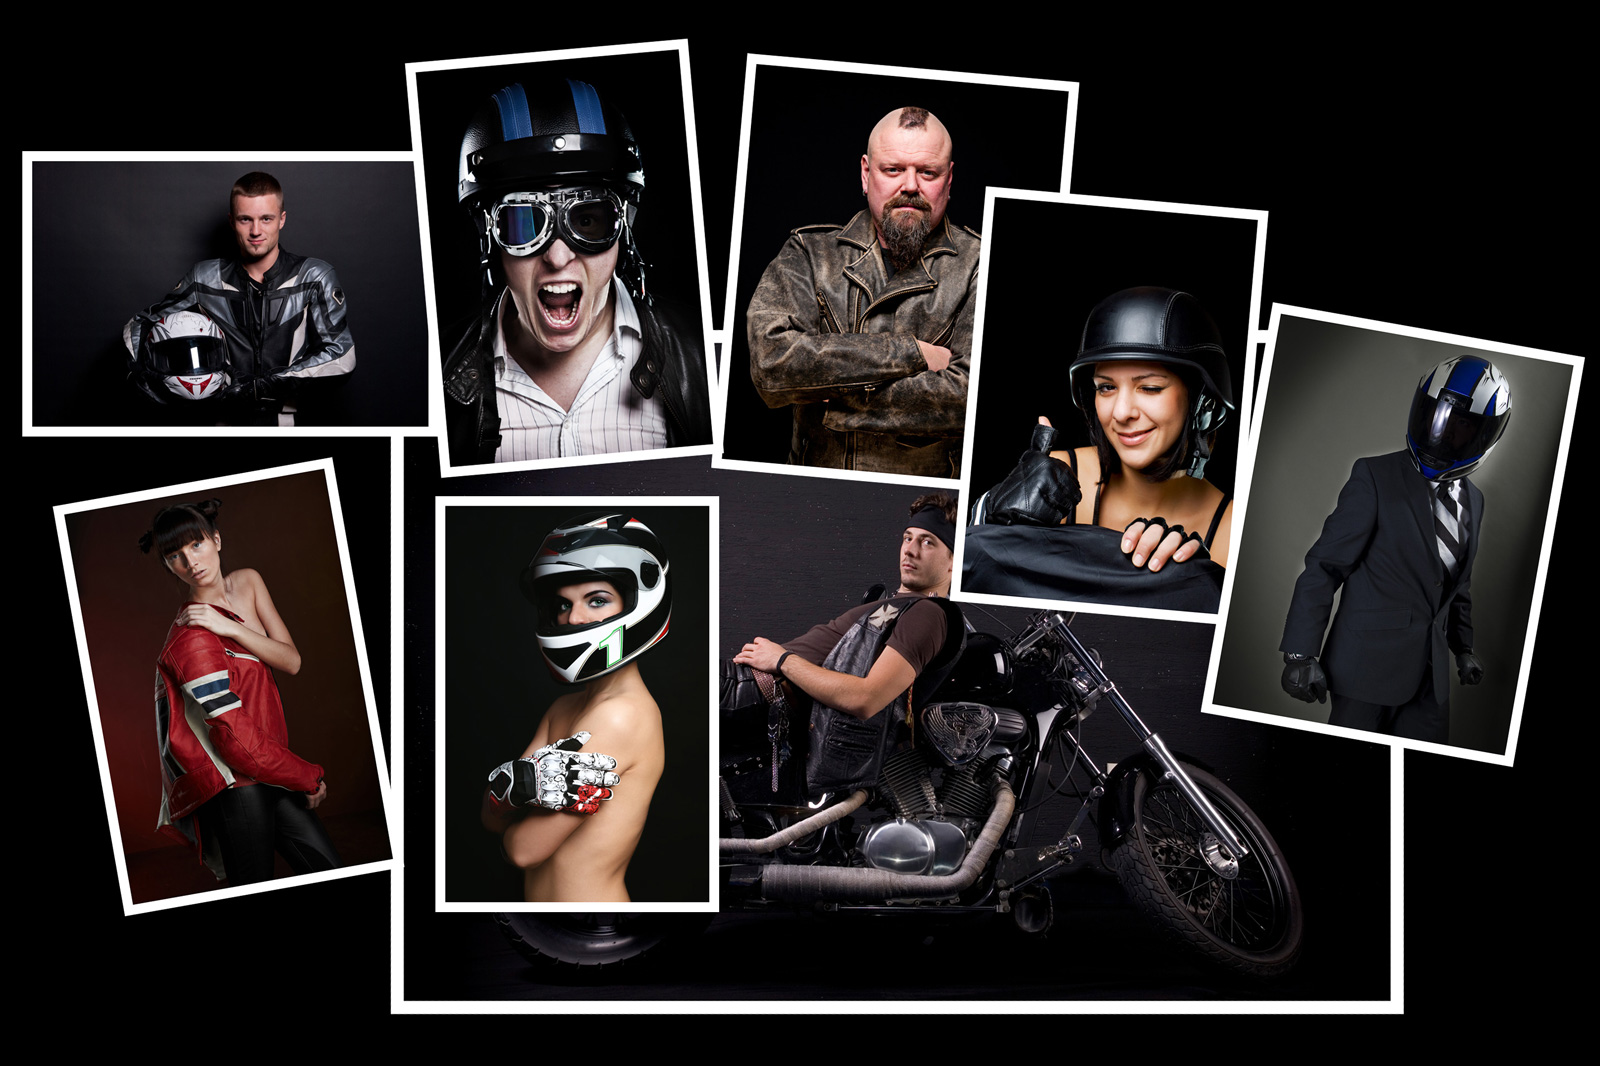 Image manipulation - bikers campaign 1 initial photos